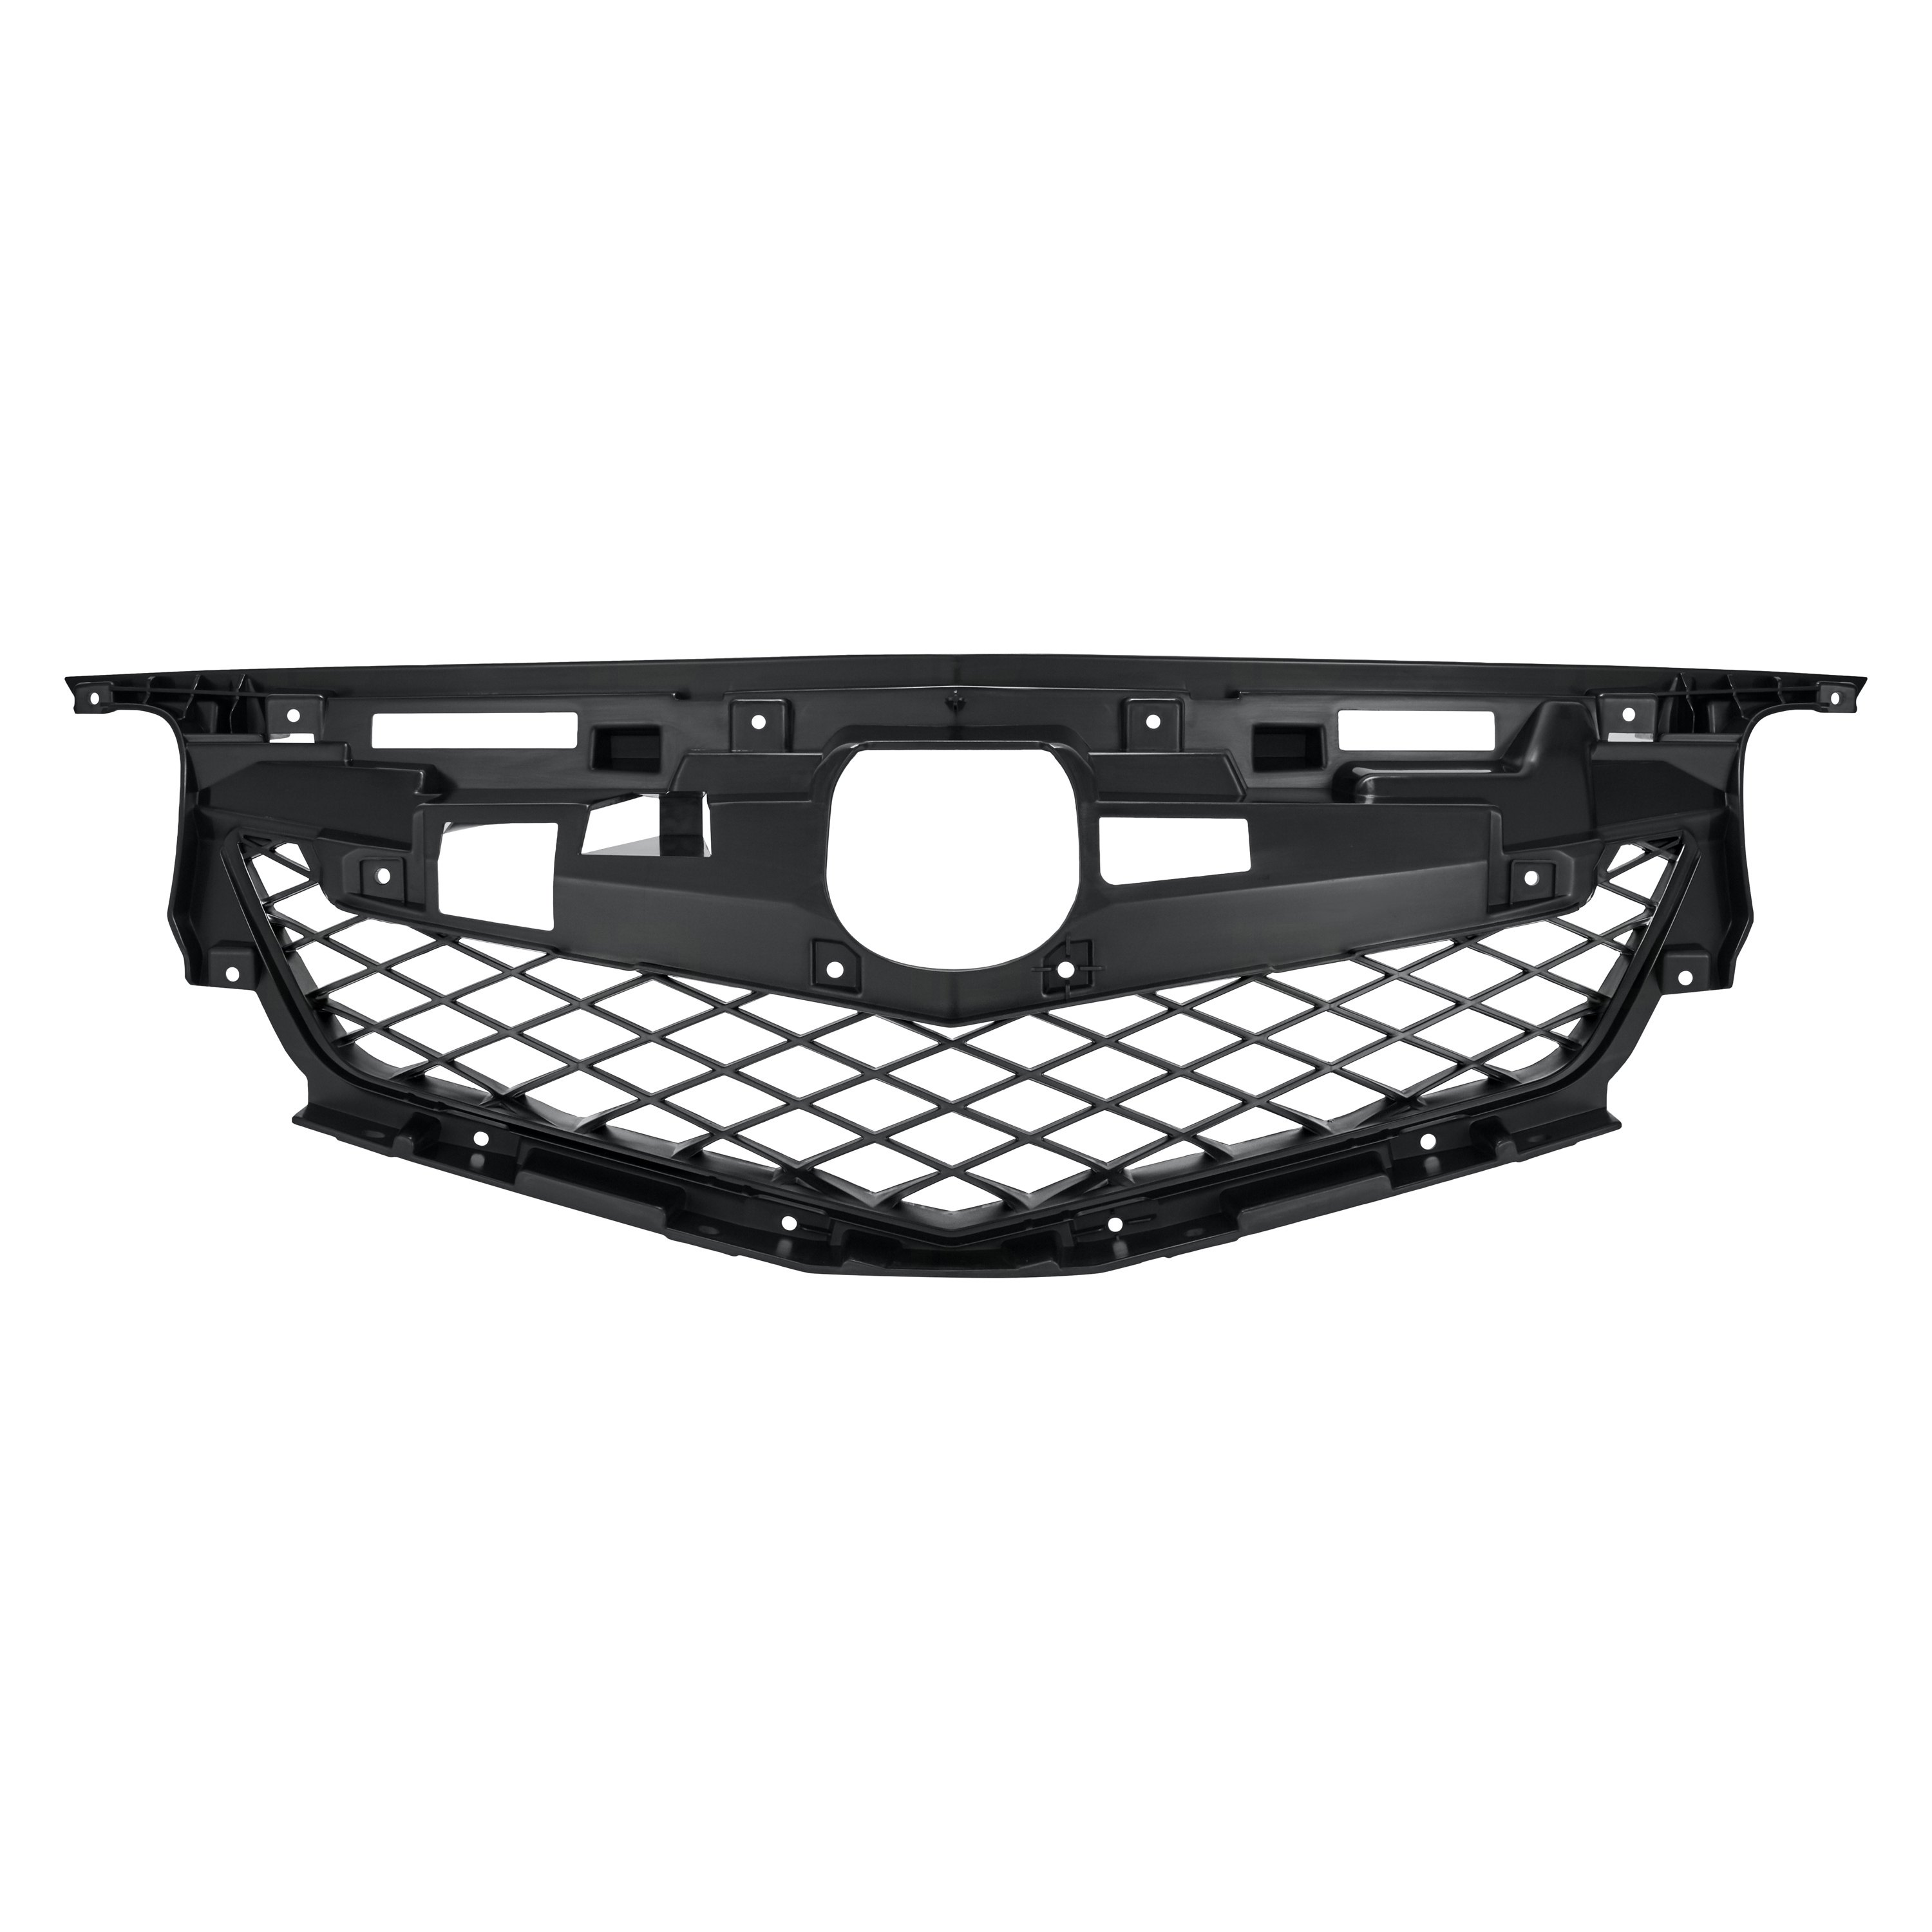 Replace® AC1202100V - Grille